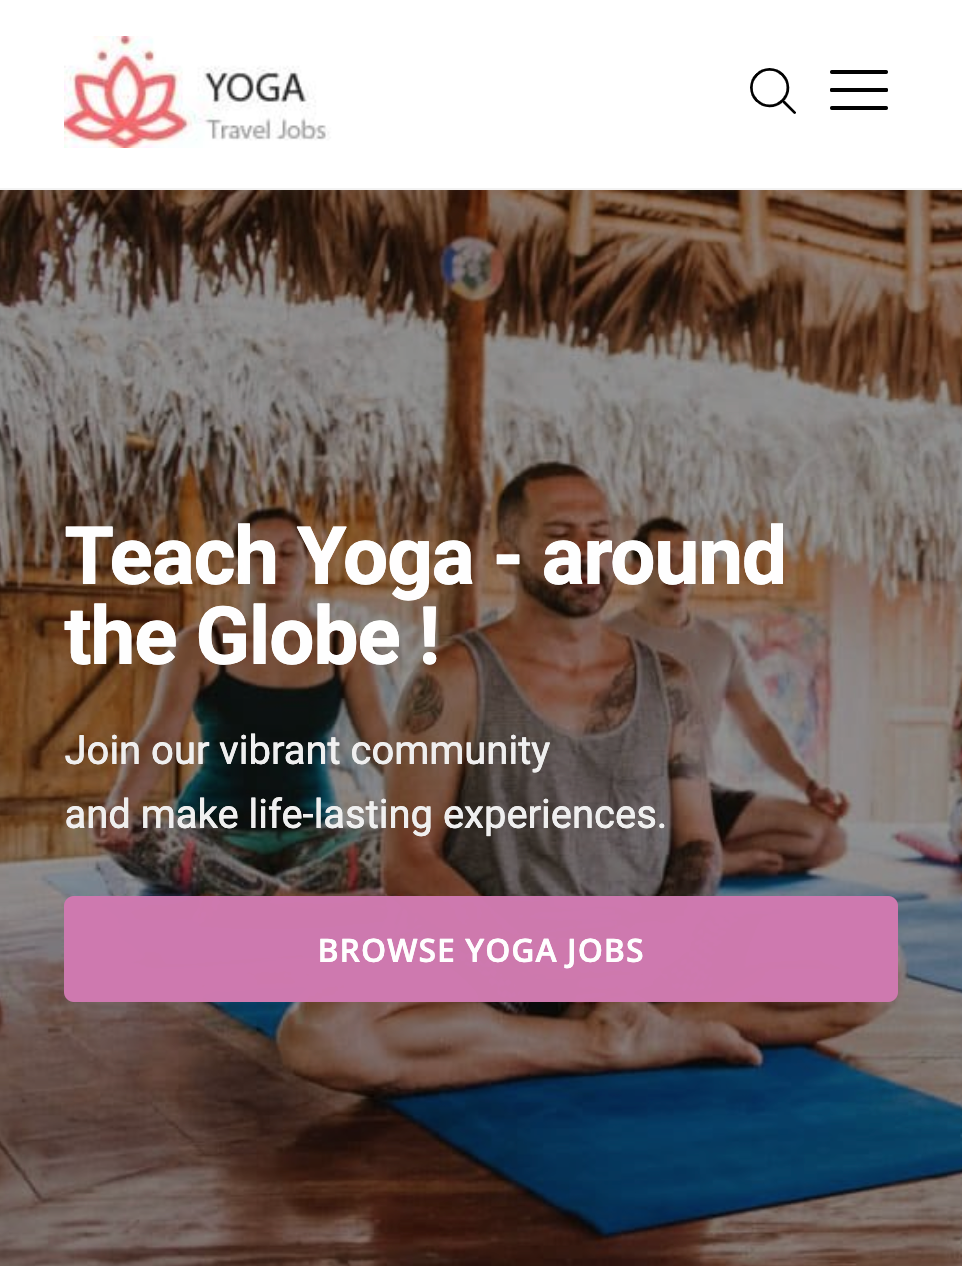 Yoga Travel Jobs